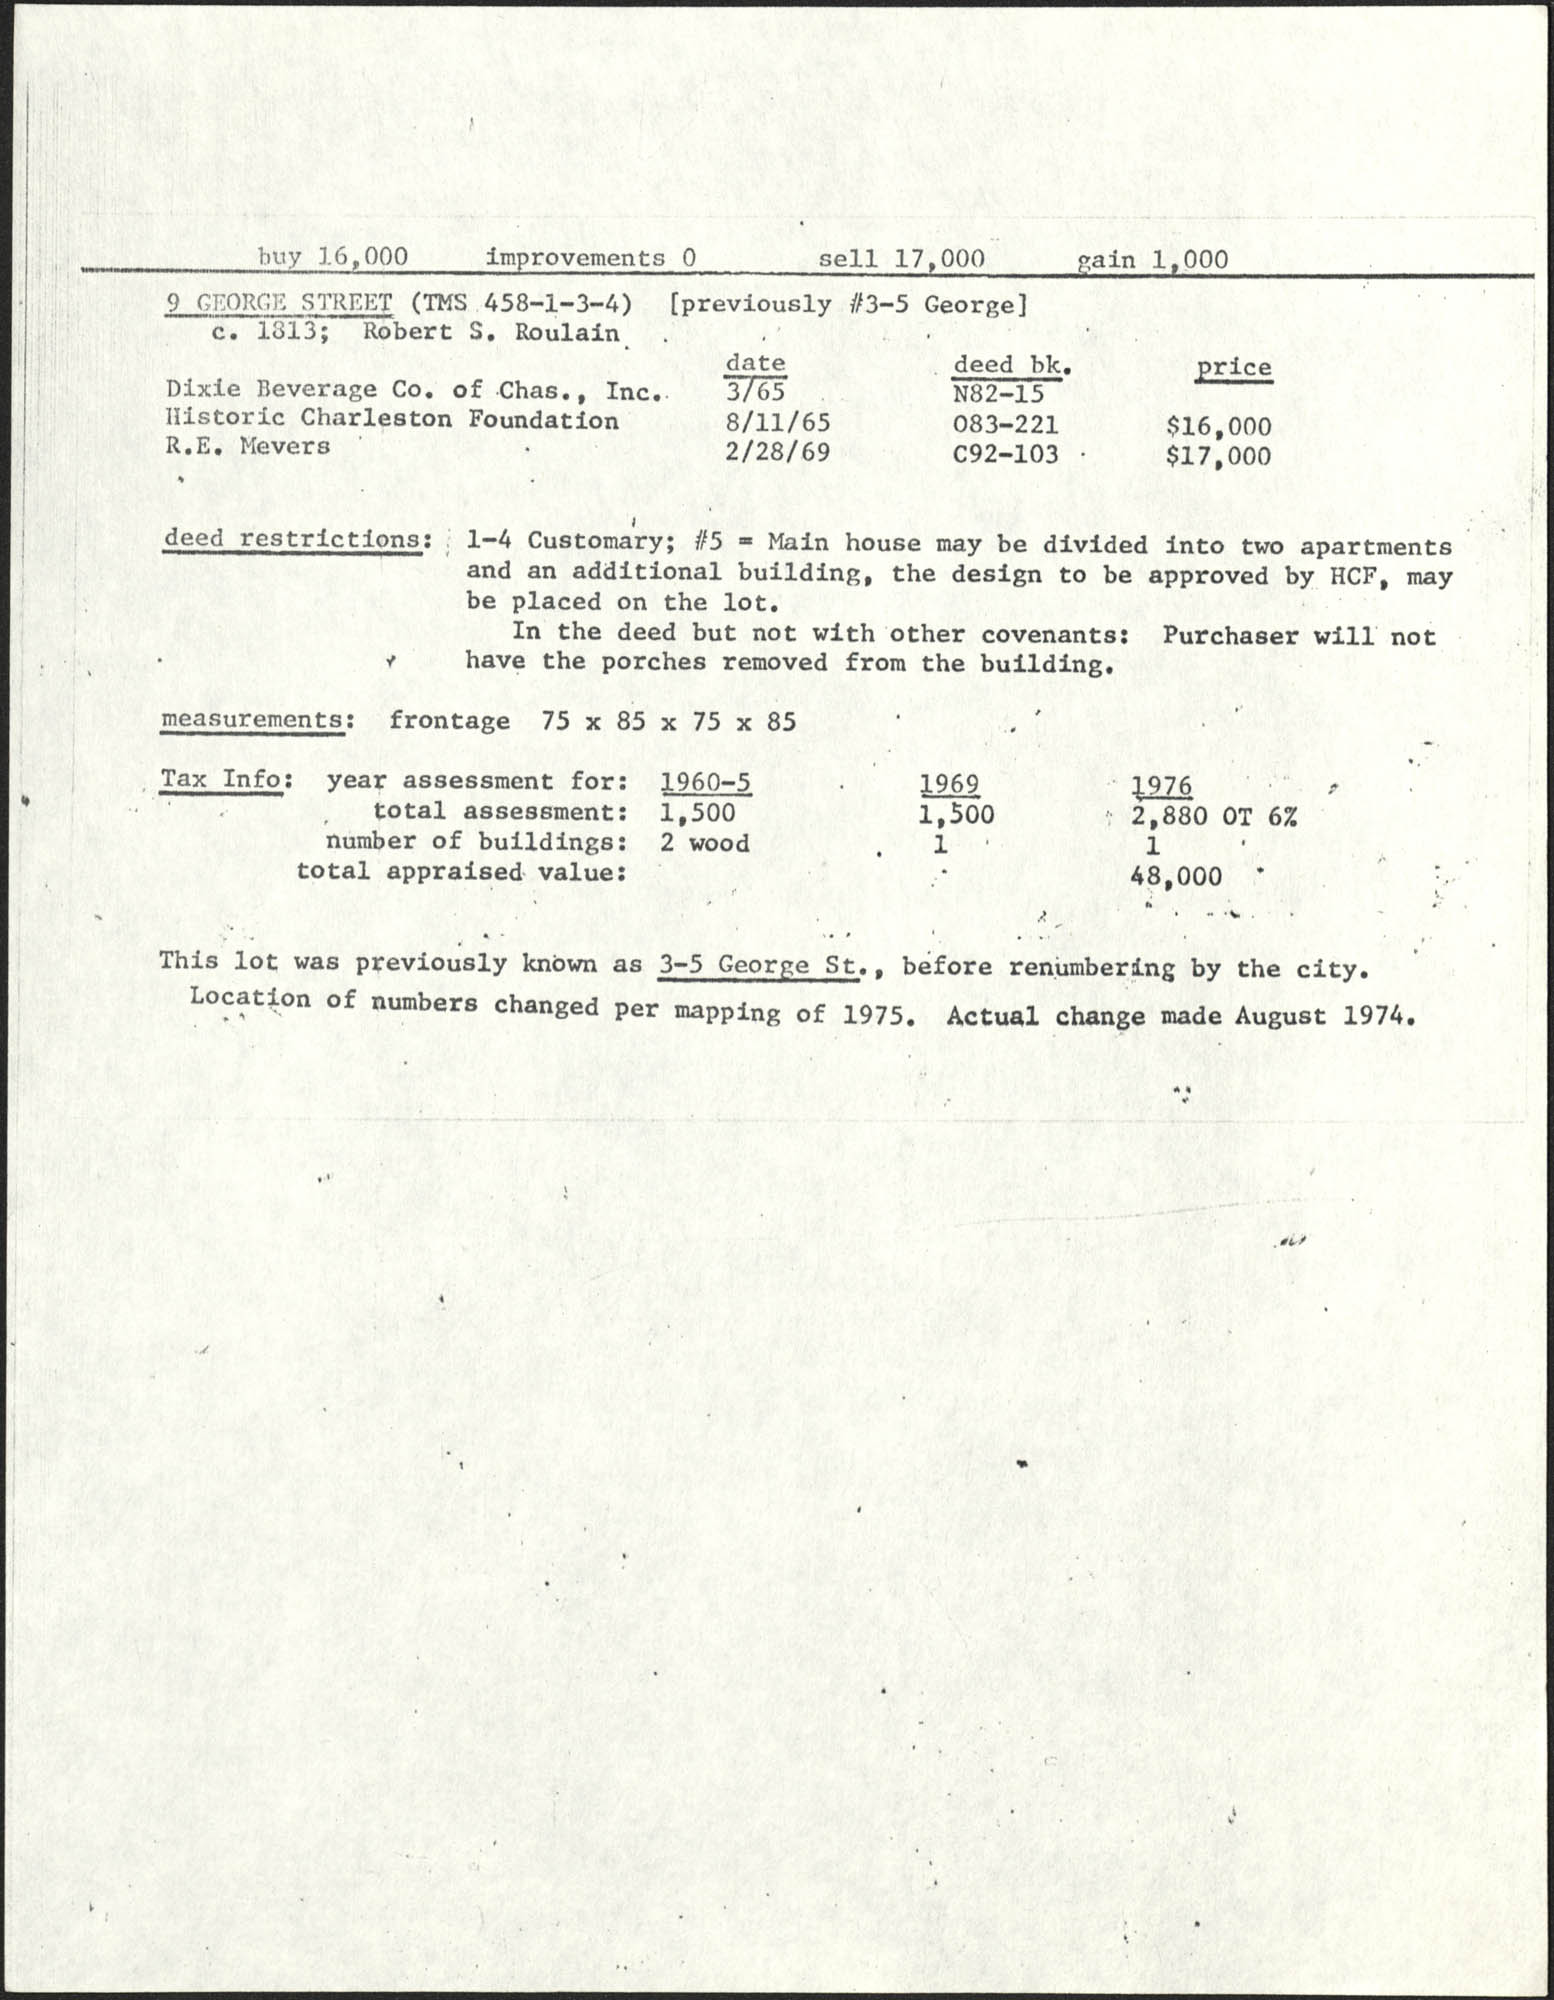 Deed records for 9 George Street